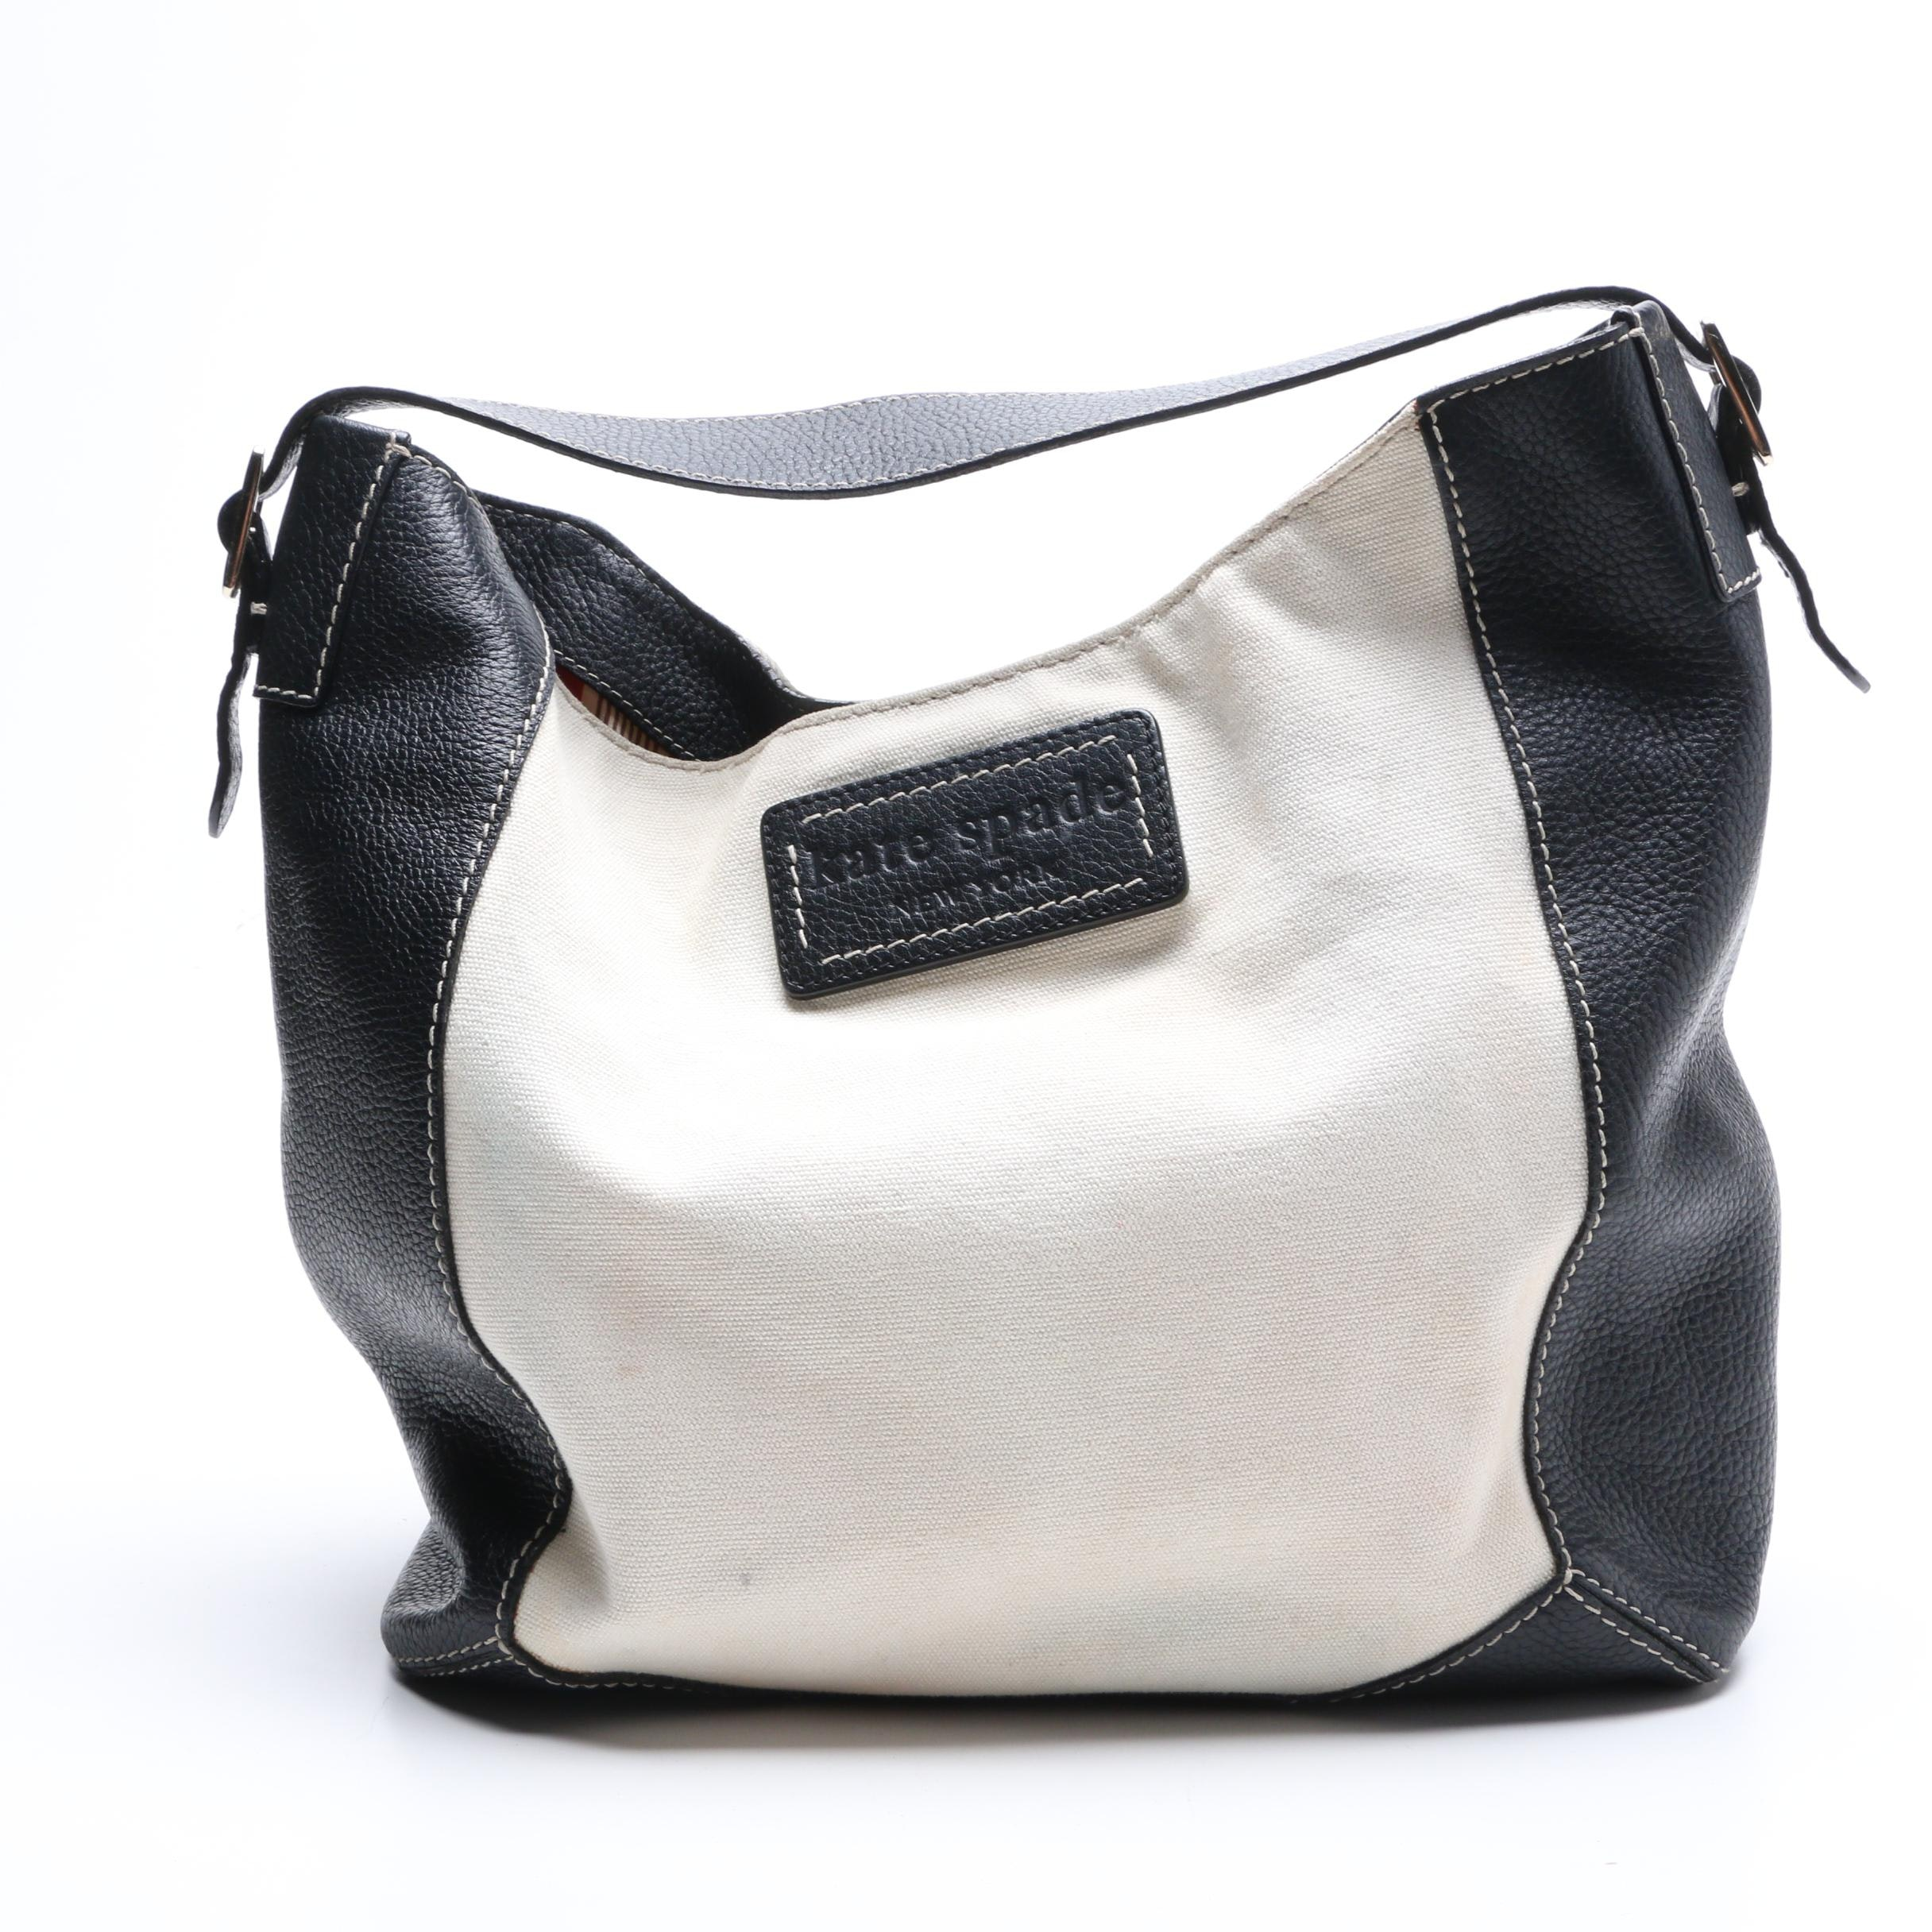 Kate Spade New York Leather and Canvas Hobo Bag